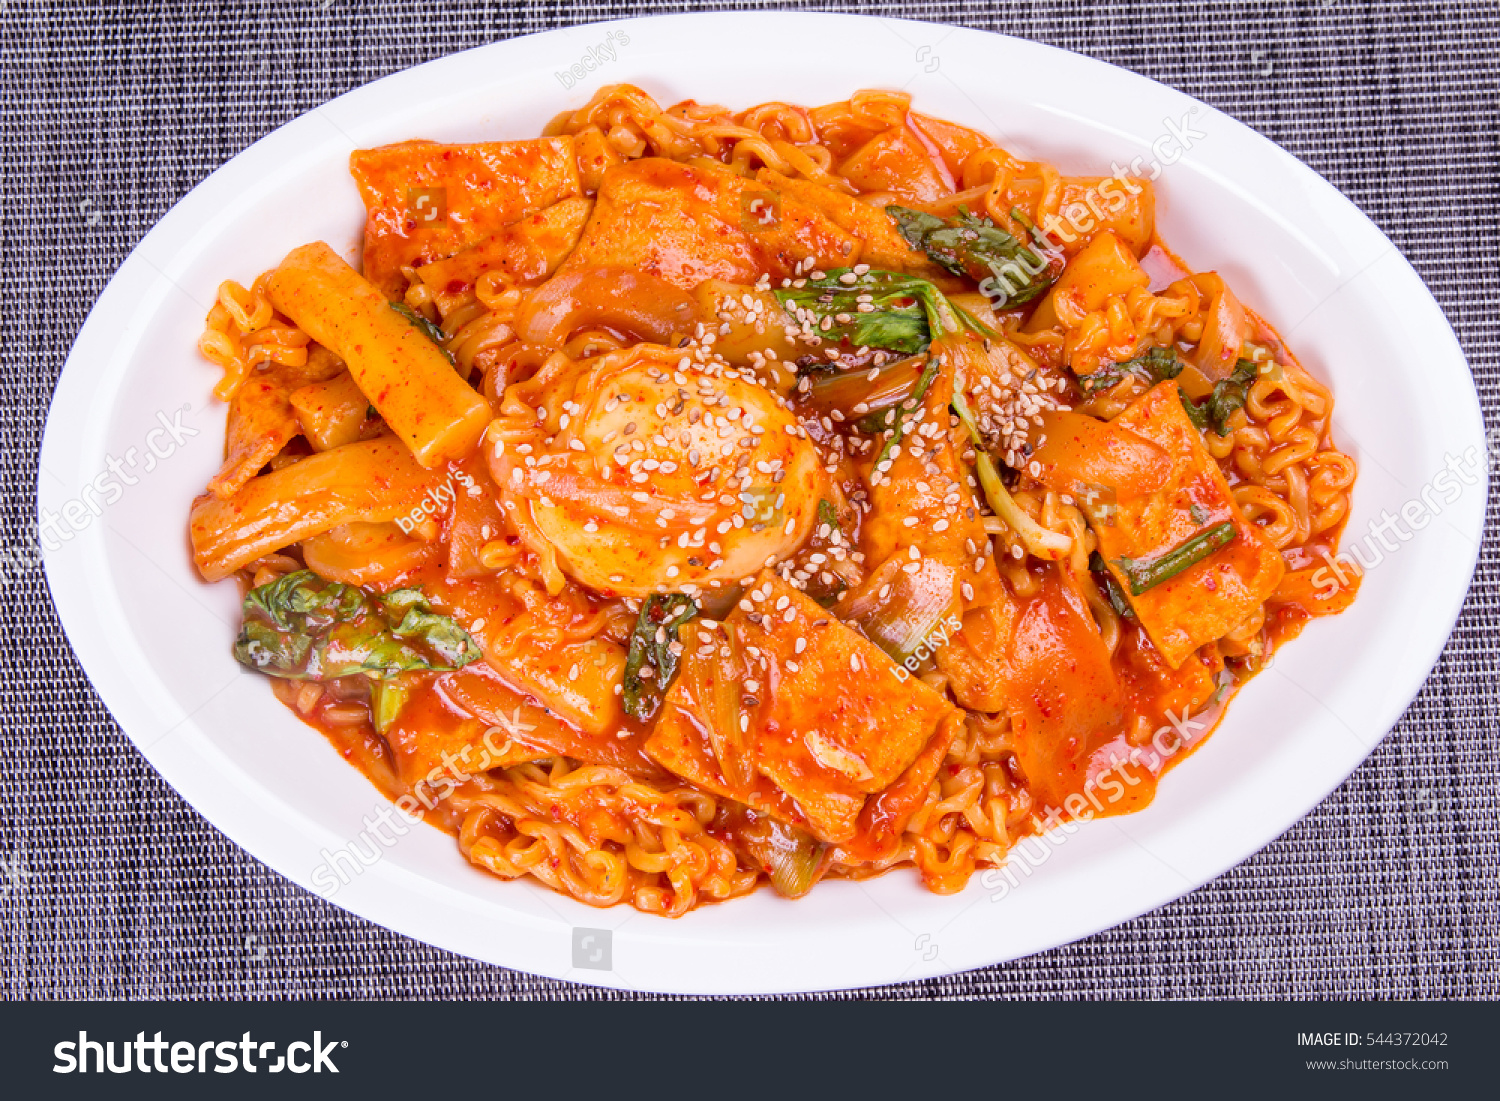 Stir Fried Rice Cake Korean Food Stock Photo Edit Now 544372042